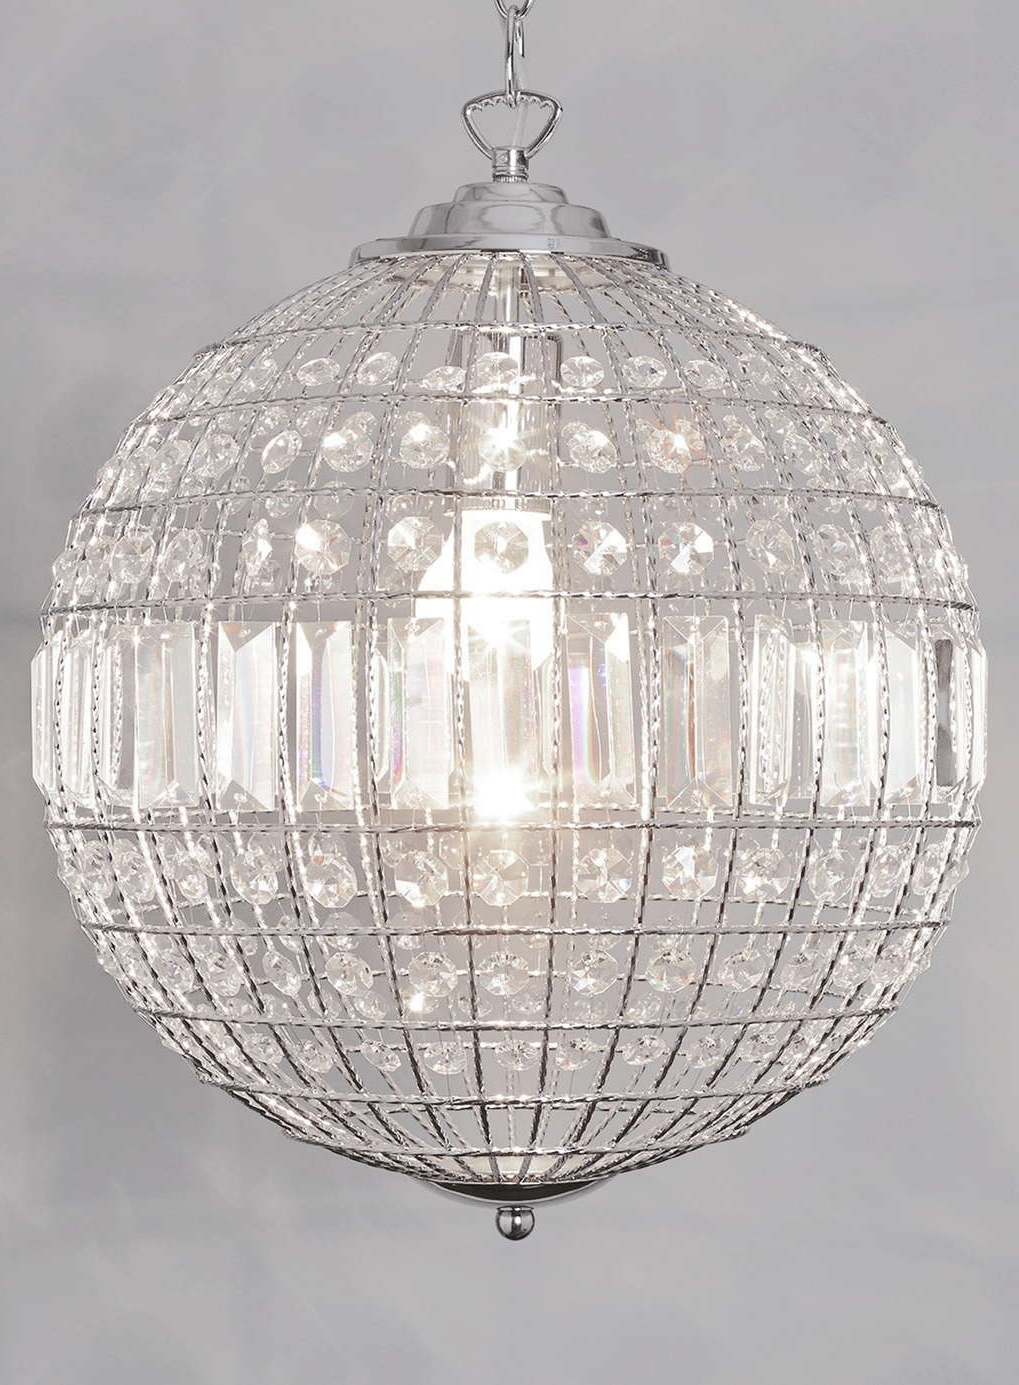 Medium Round Brass Crystal Chandelier With Banded Leaf Decoration Throughout Most Up To Date Globe Crystal Chandelier (View 16 of 20)